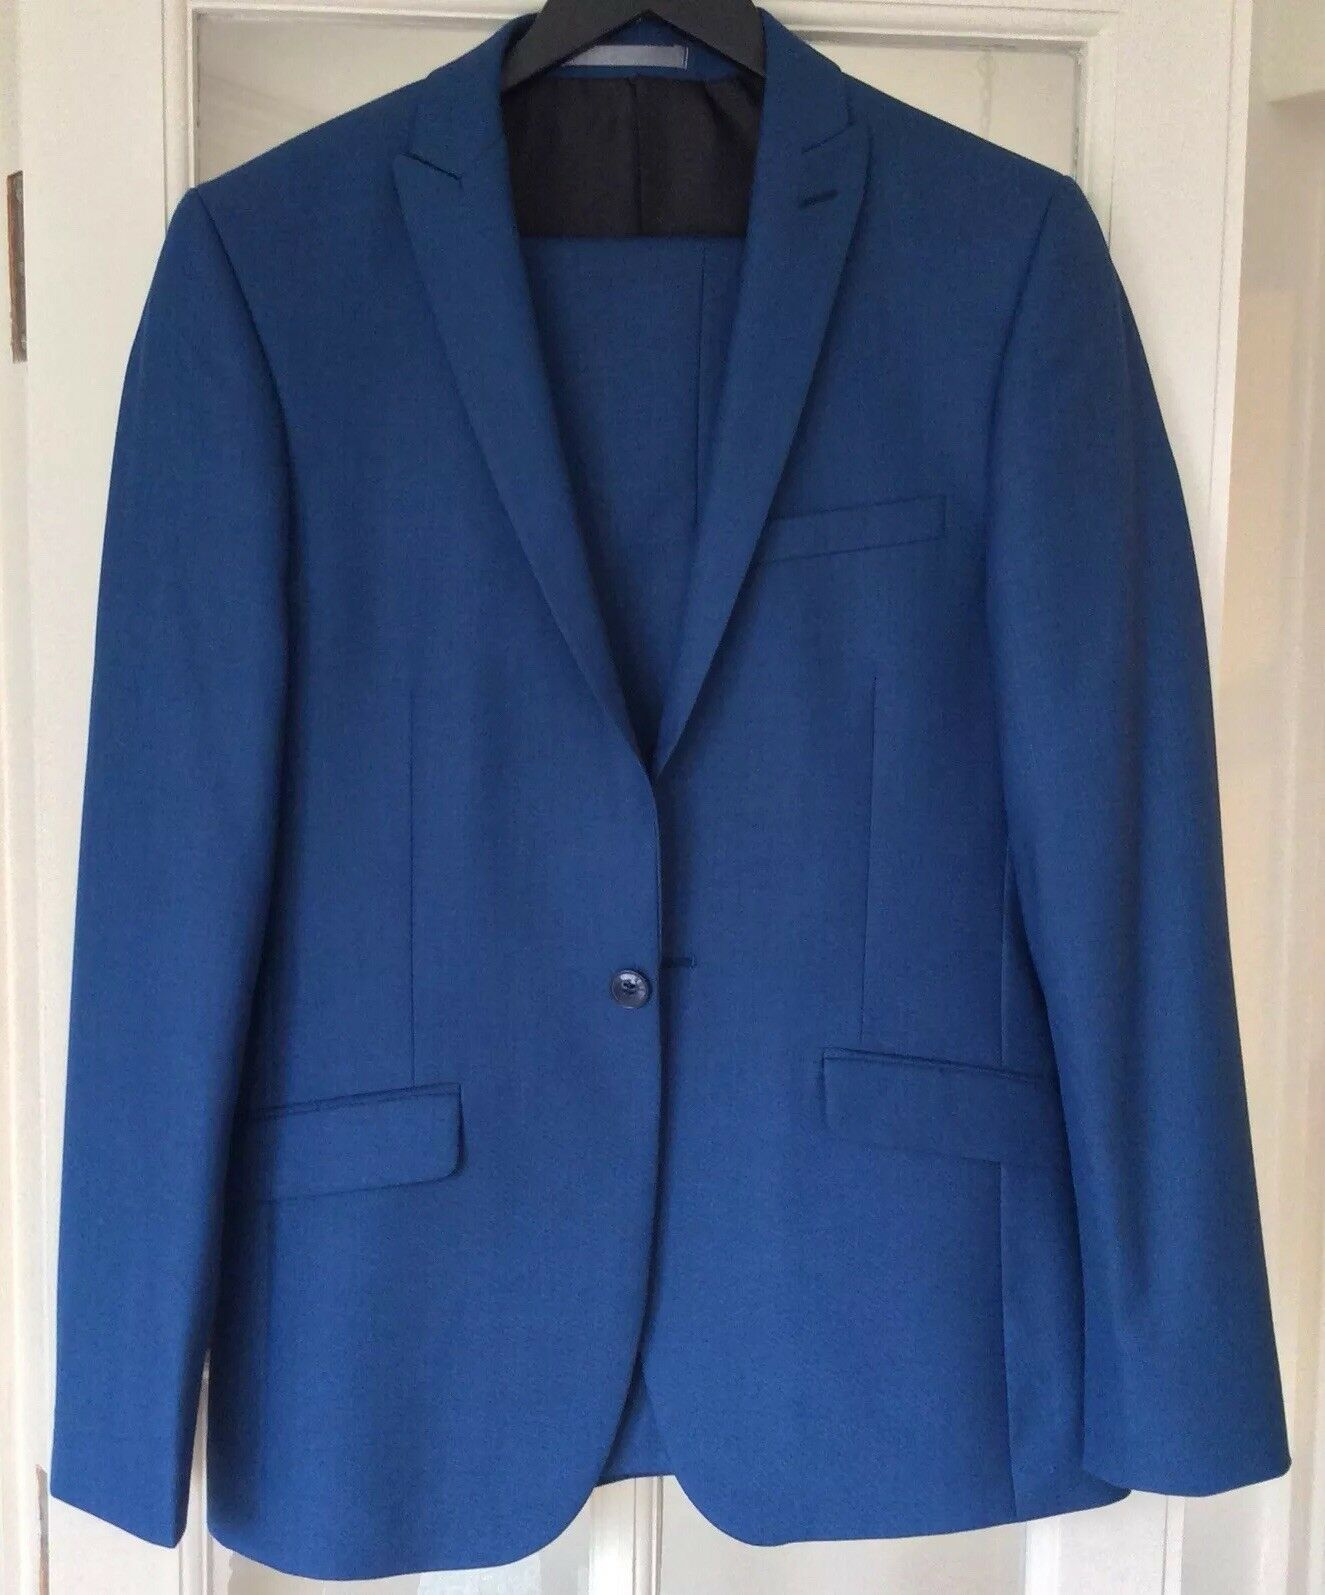 Mens Red Herring Bright bluee semi plain 1 button slim fit suit 36 reg   30 long